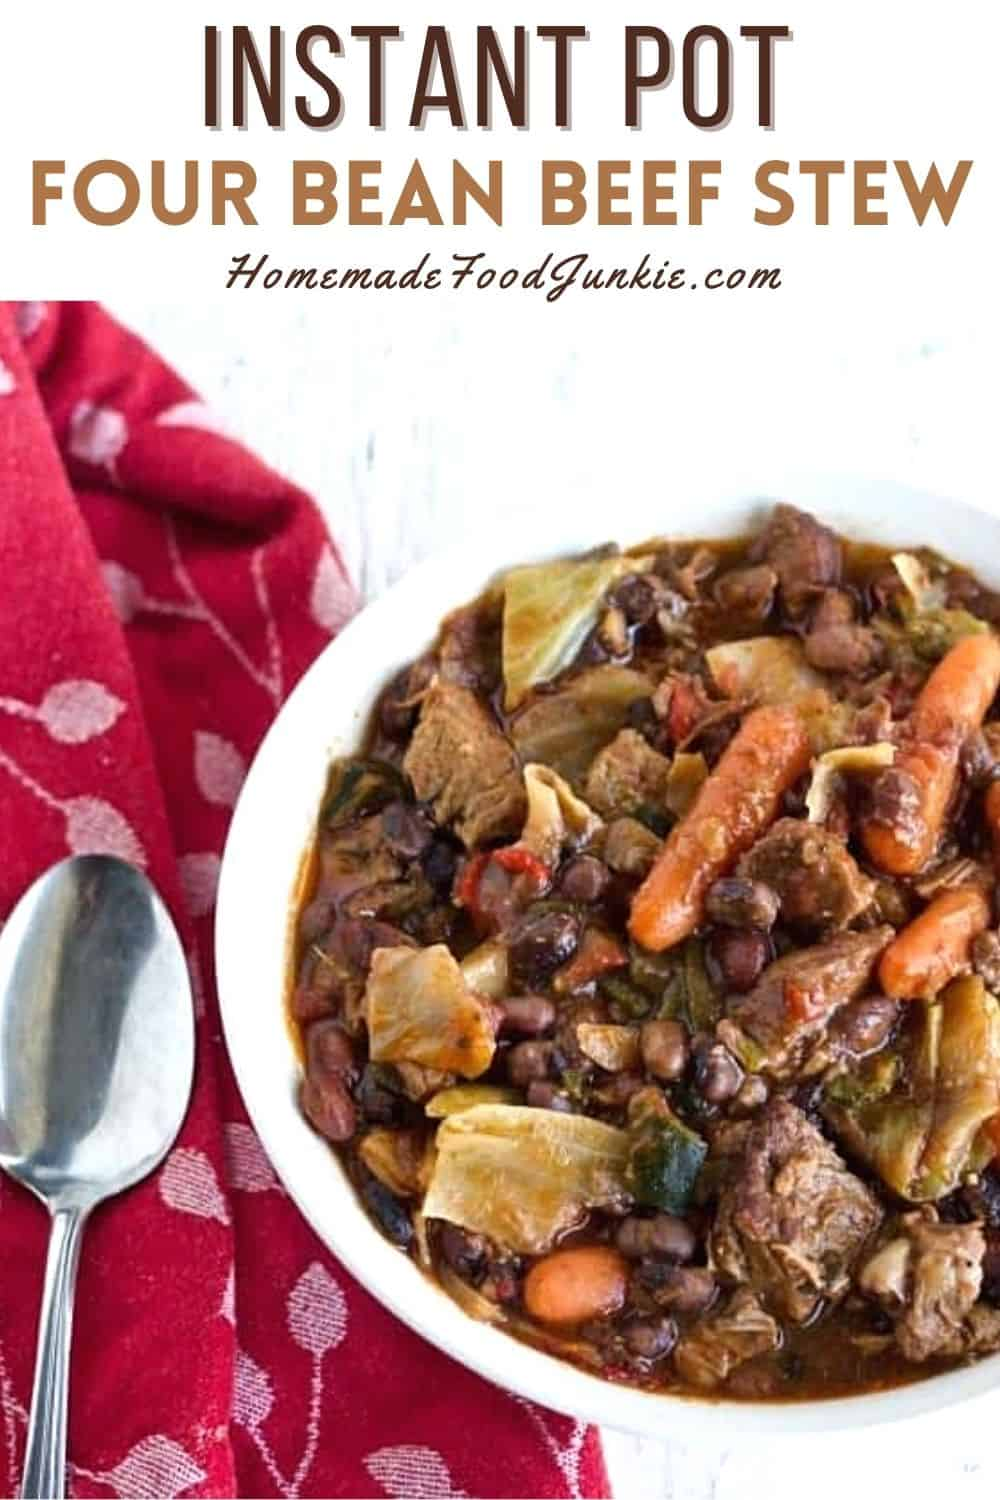 Instant pot four bean beef stew-pin image